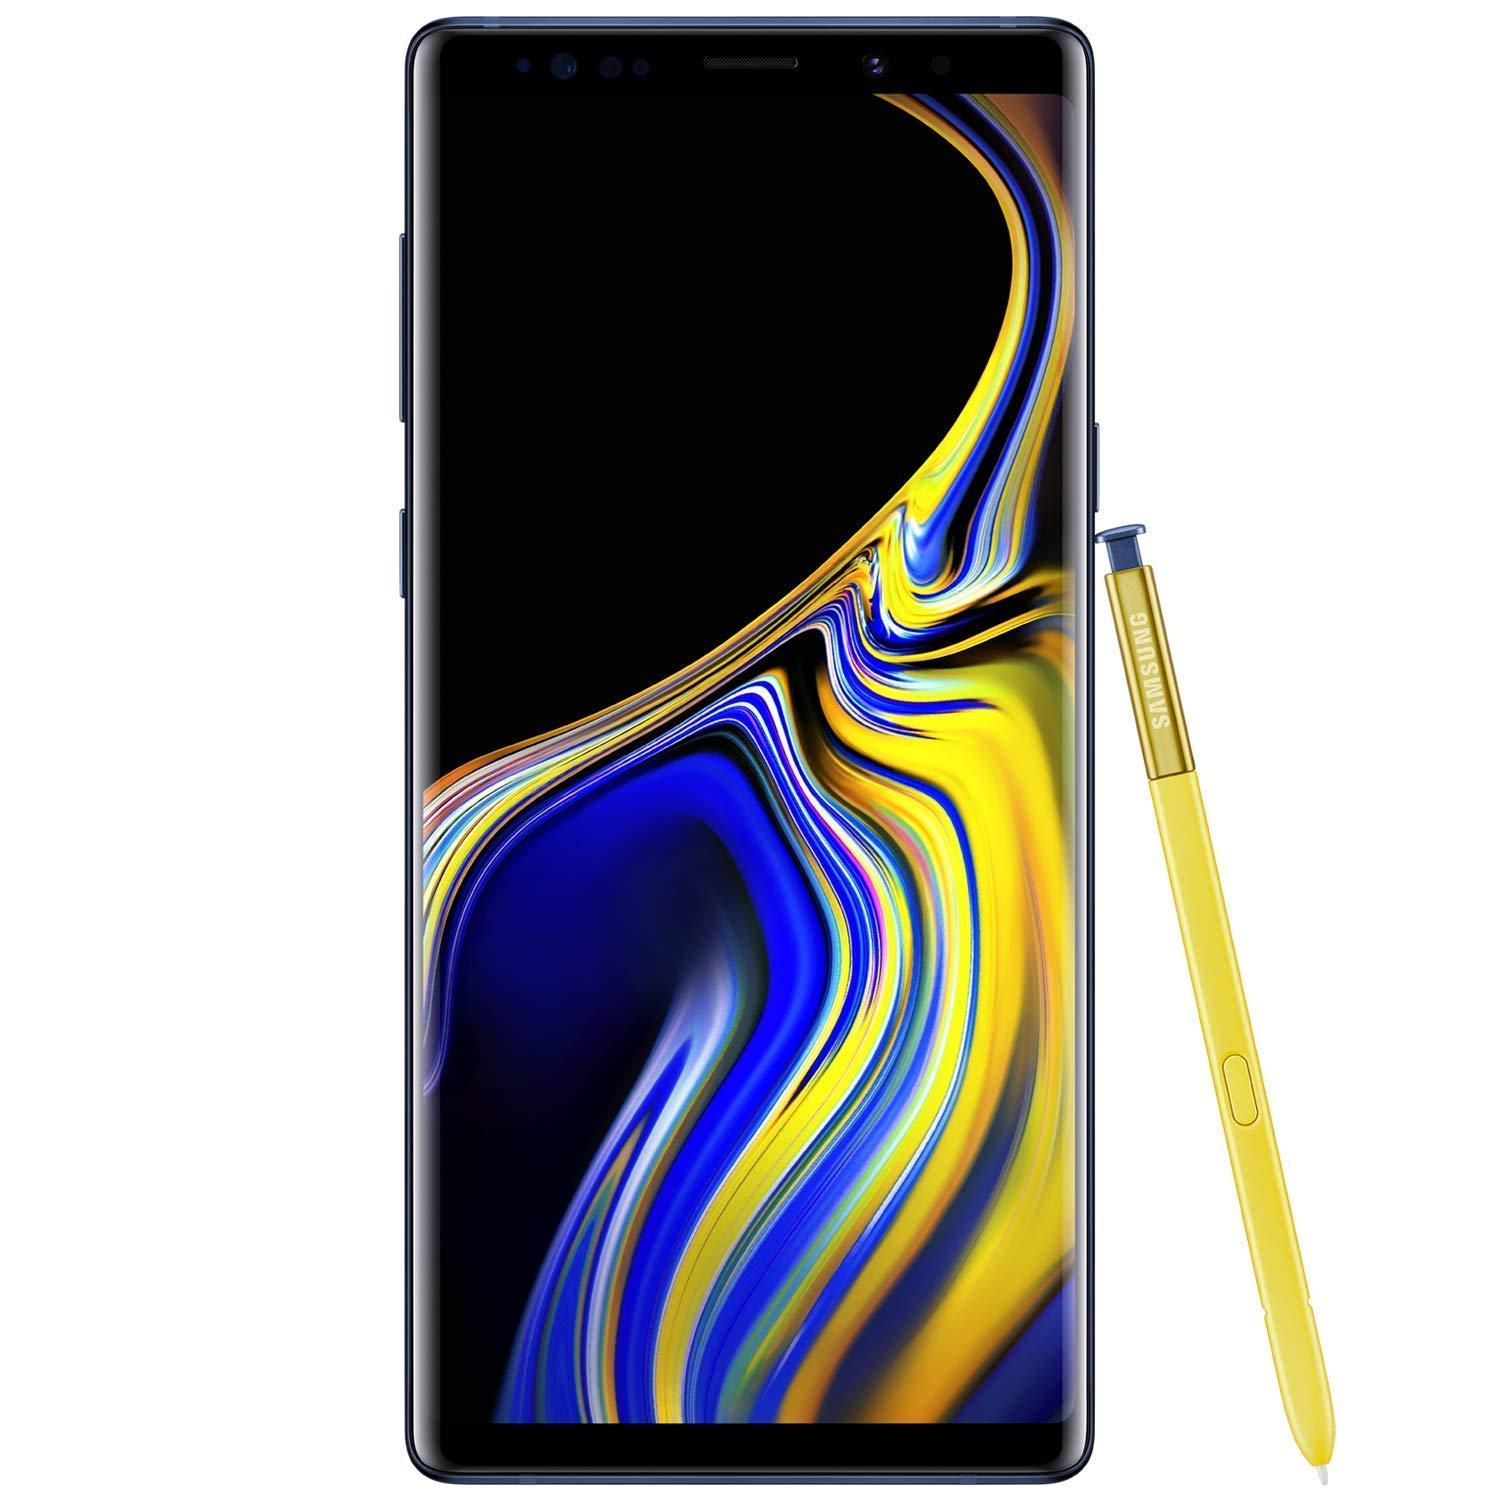 Samsung Galaxy Note9 Factory Unlocked Phone with 6.4in Screen and 128GB - Ocean Blue (Renewed) by Samsung